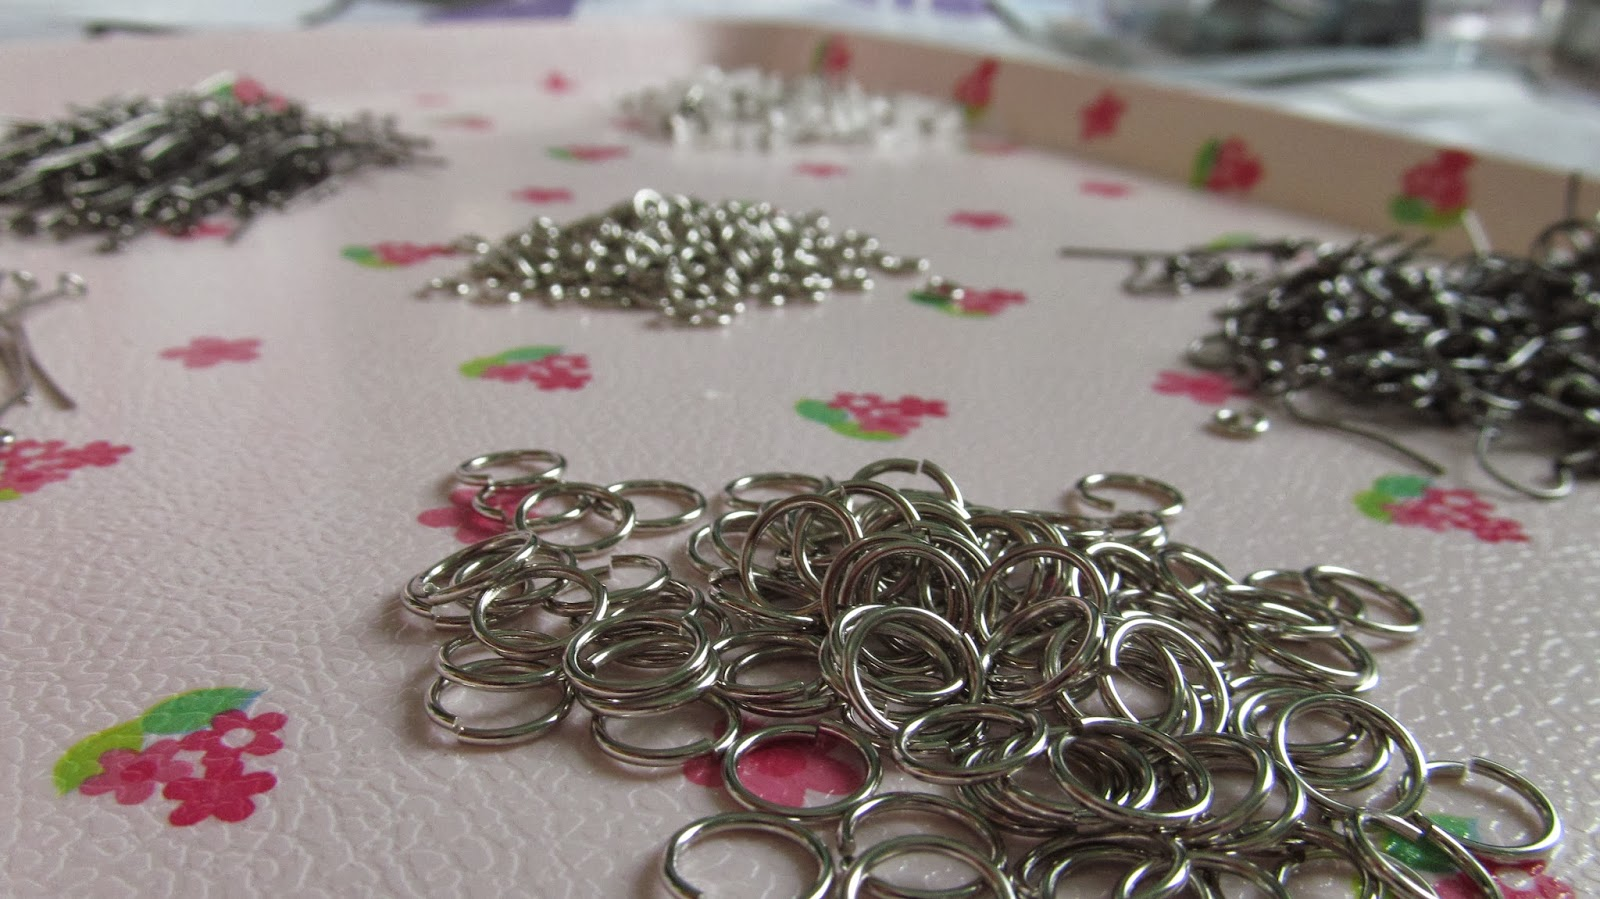 Lara Novales jump rings eye pins and other jewelry making supplies